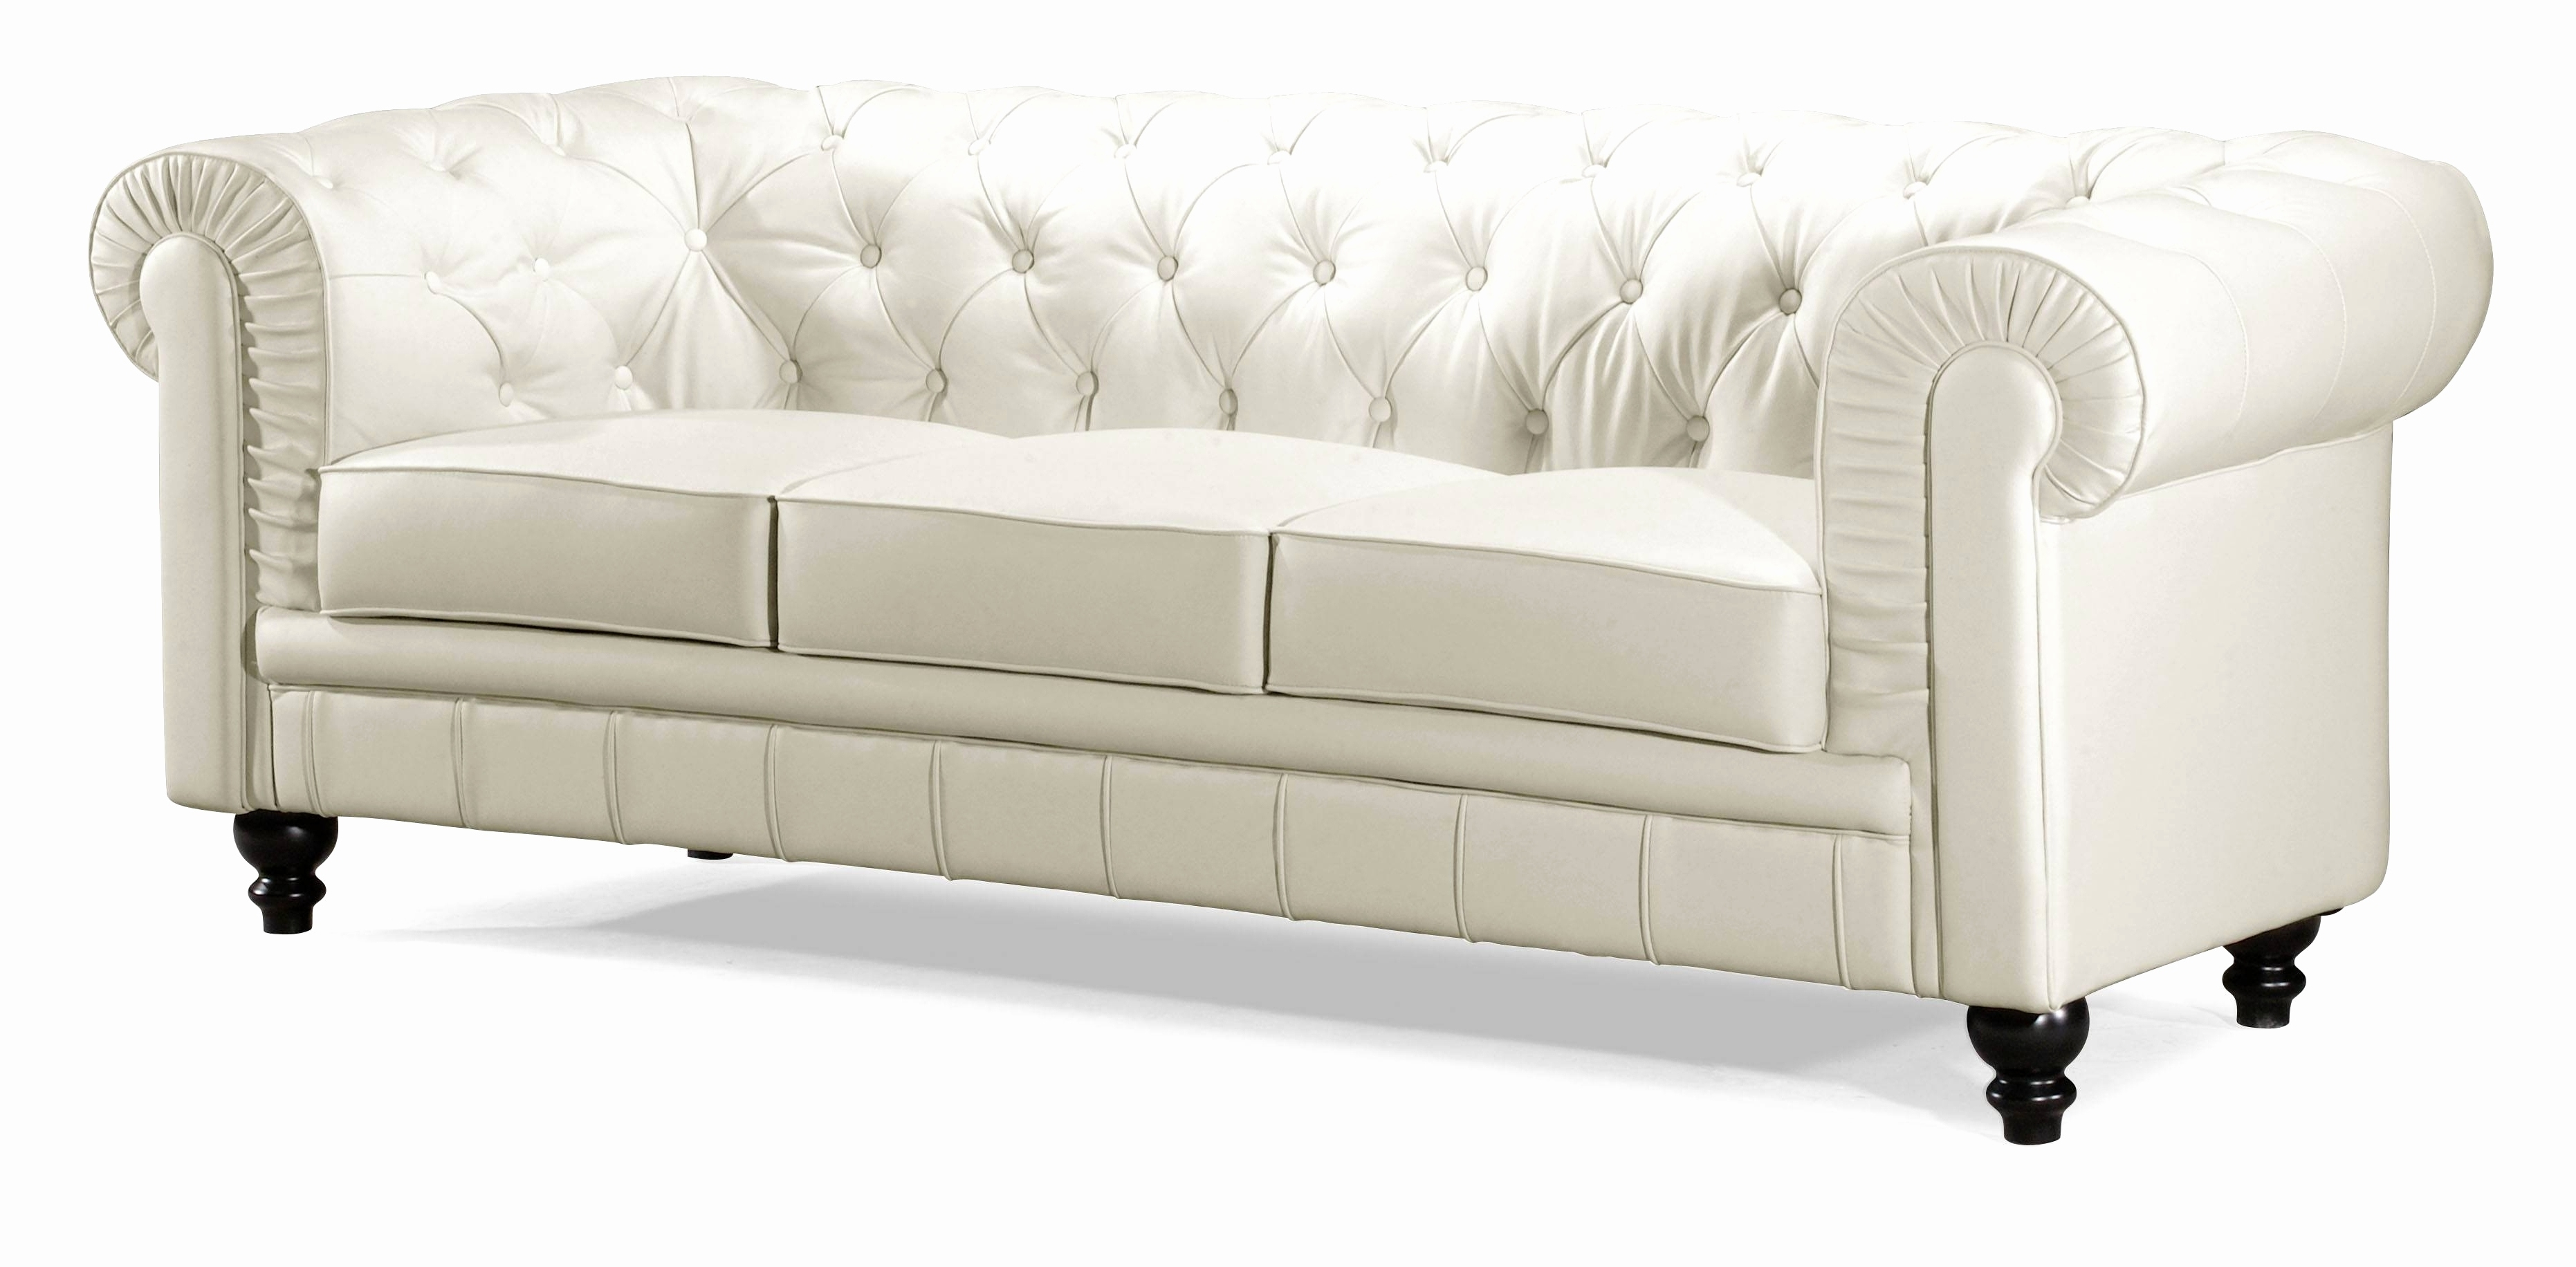 Popular Lovely Affordable Tufted Sofa 2018 – Couches And Sofas Ideas Inside Affordable Tufted Sofas (View 15 of 20)